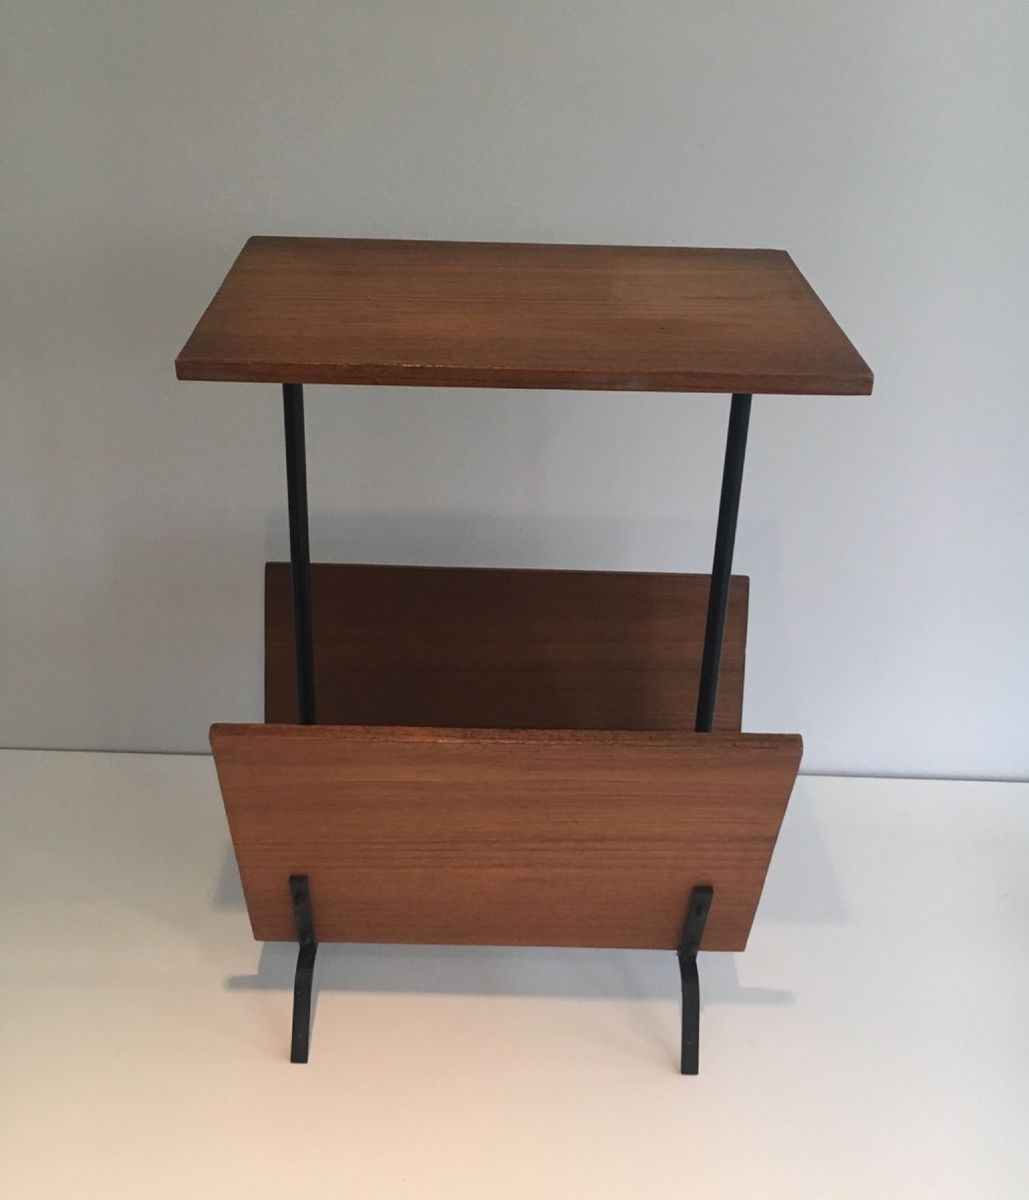 vintage side table with magazine rack for pamono accent per piece oil rubbed bronze spray paint tall drawers spokane furniture outdoor umbrella oak floor edge trim target white